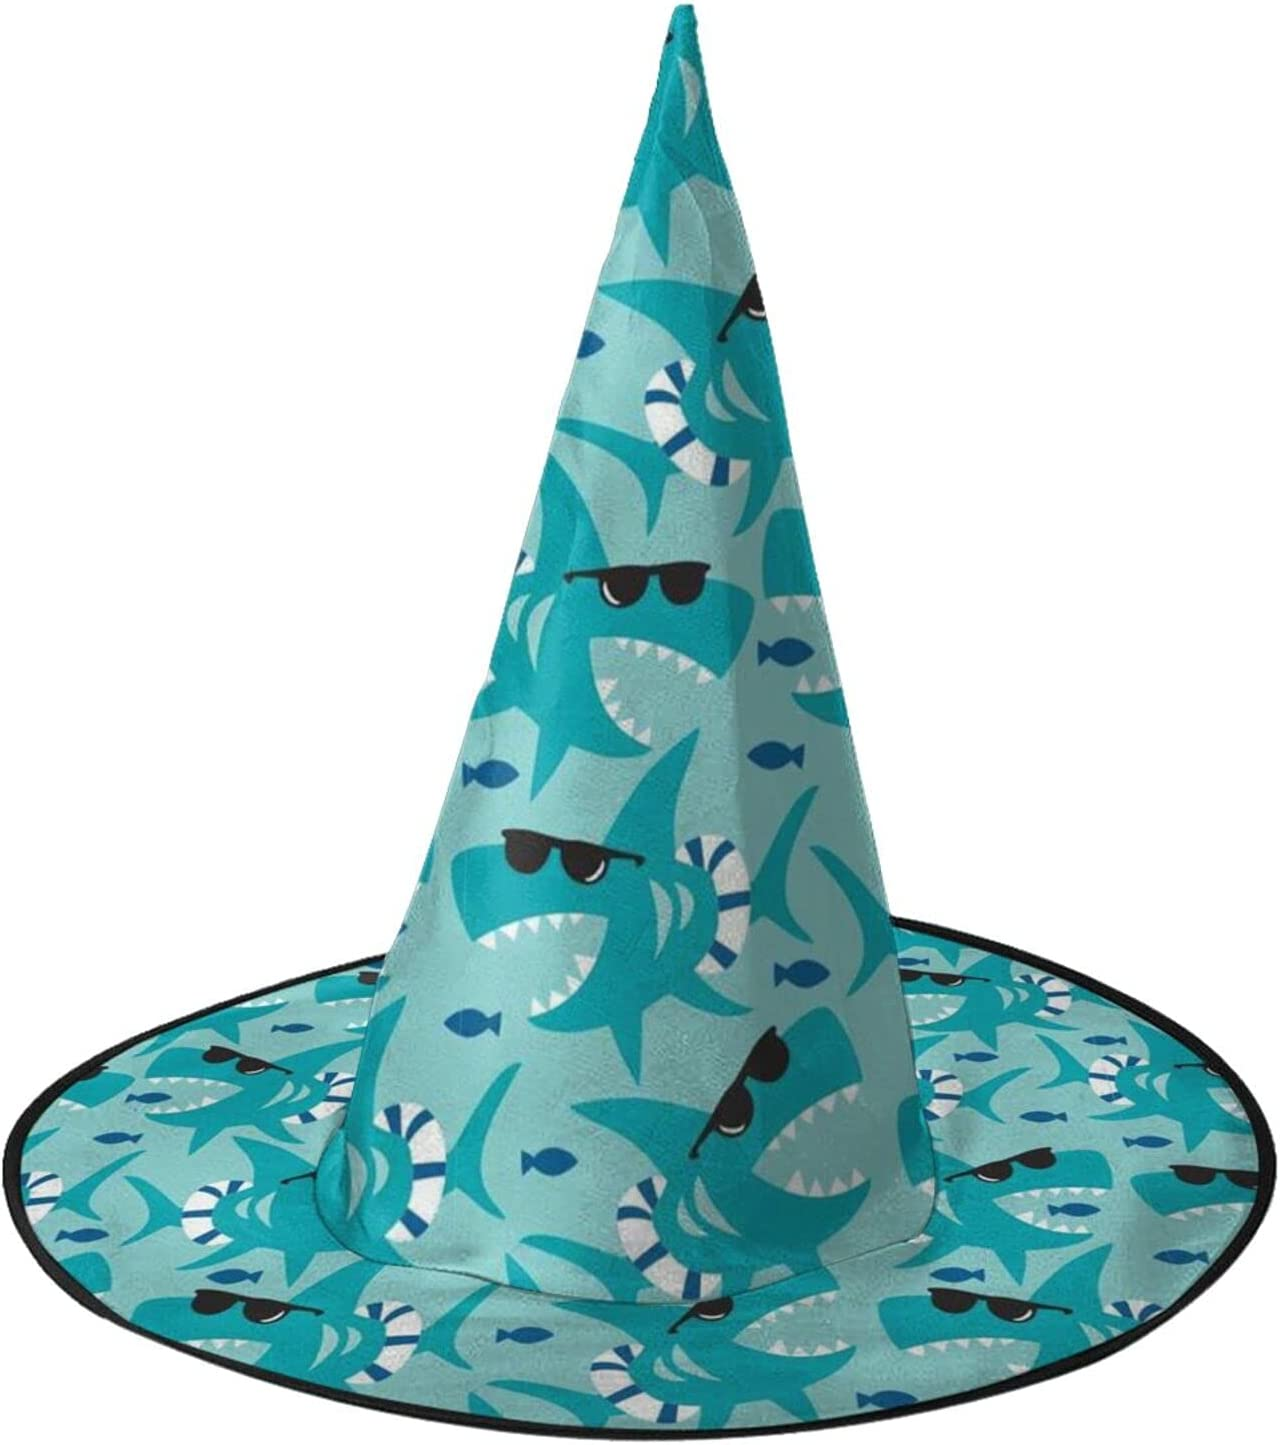 Anime Shark Womens SEAL limited product Witch Hat Girls Halloween Cap Boys Ranking TOP17 Party for